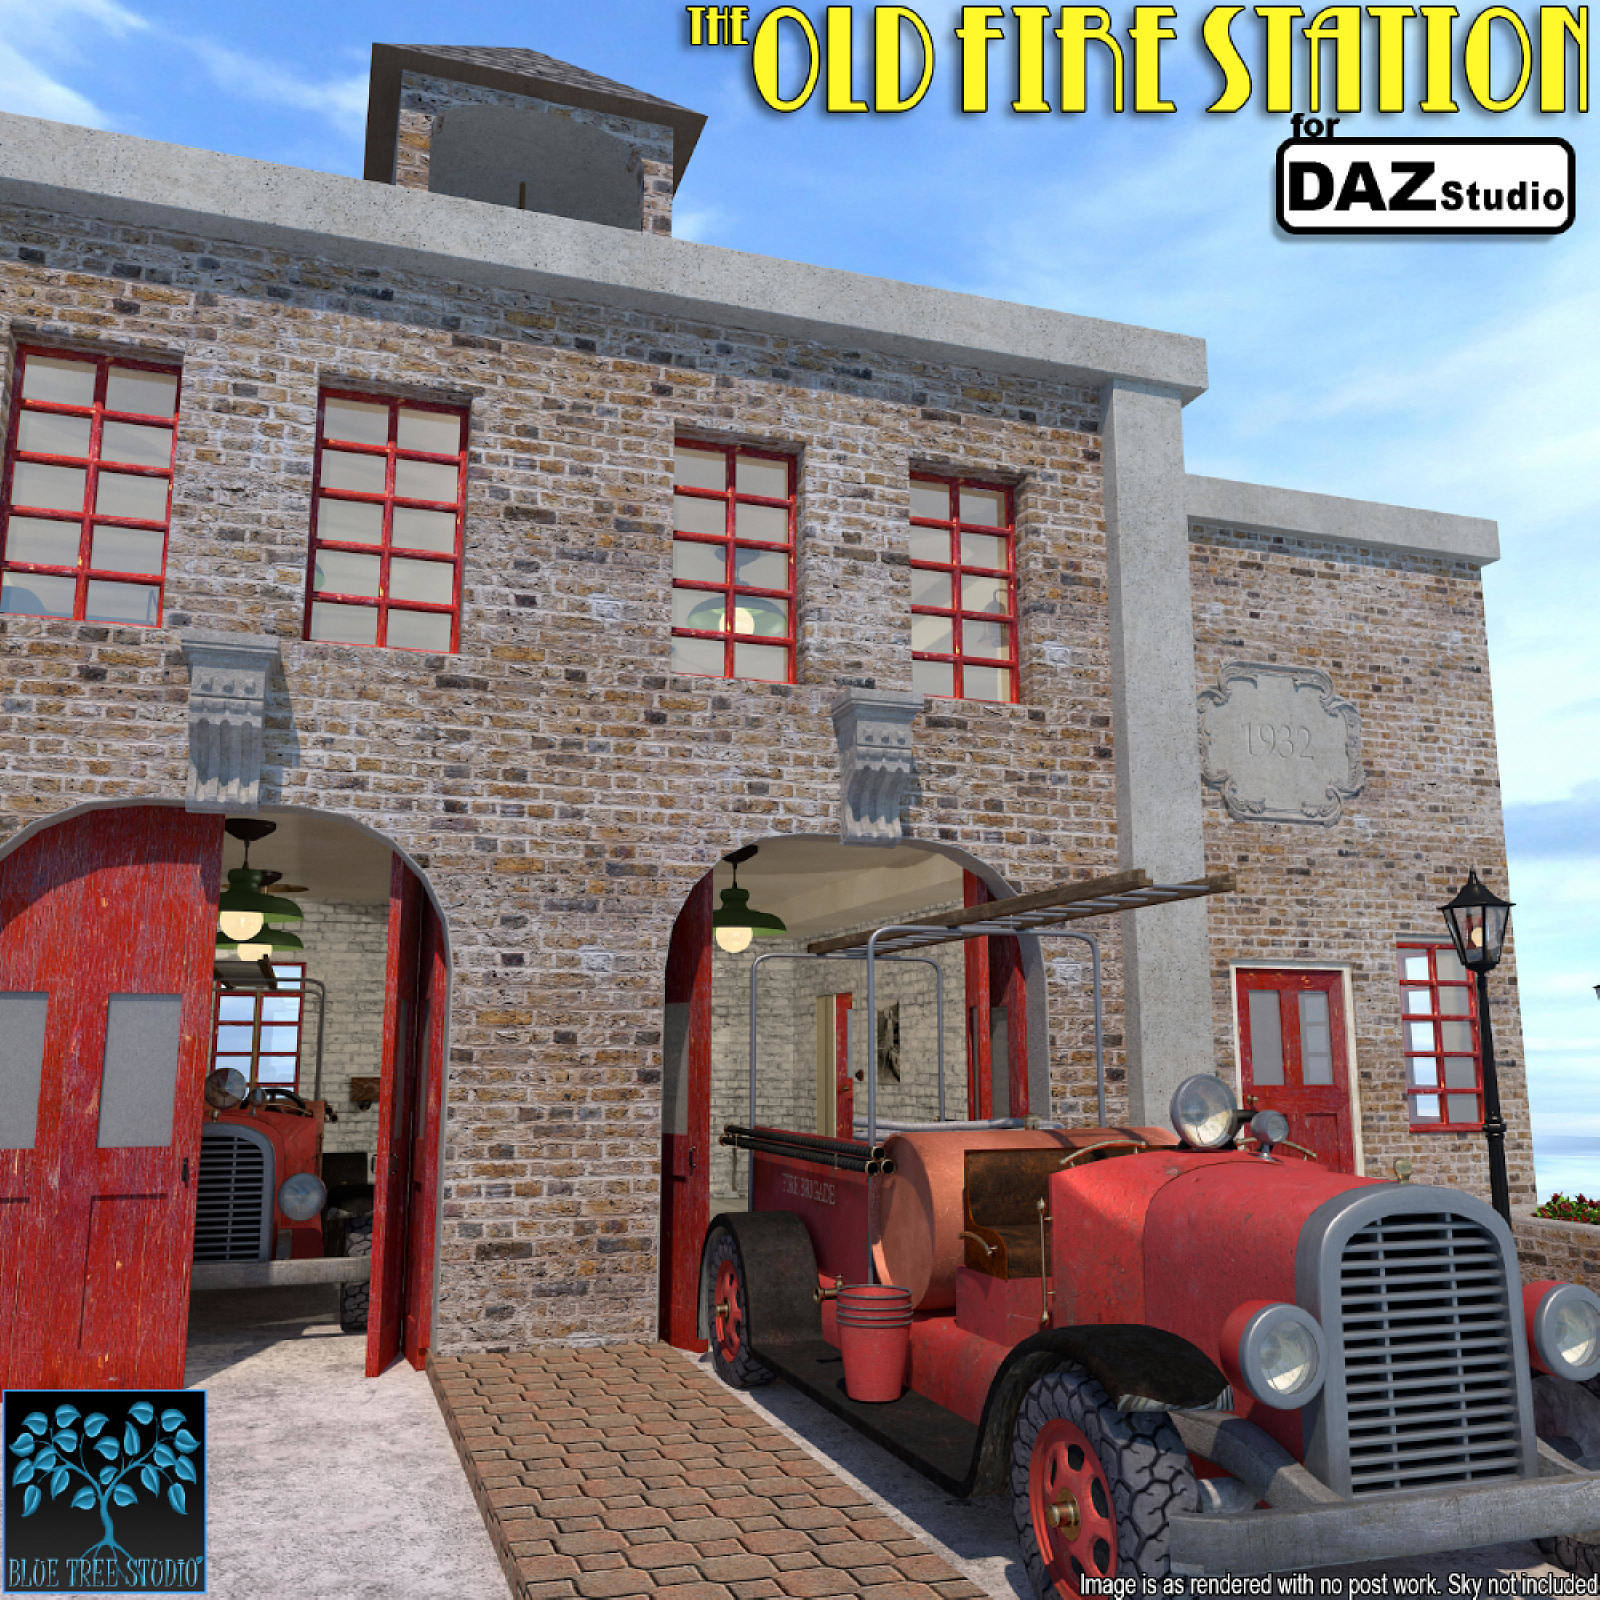 The Old Fire Station for Daz Studio